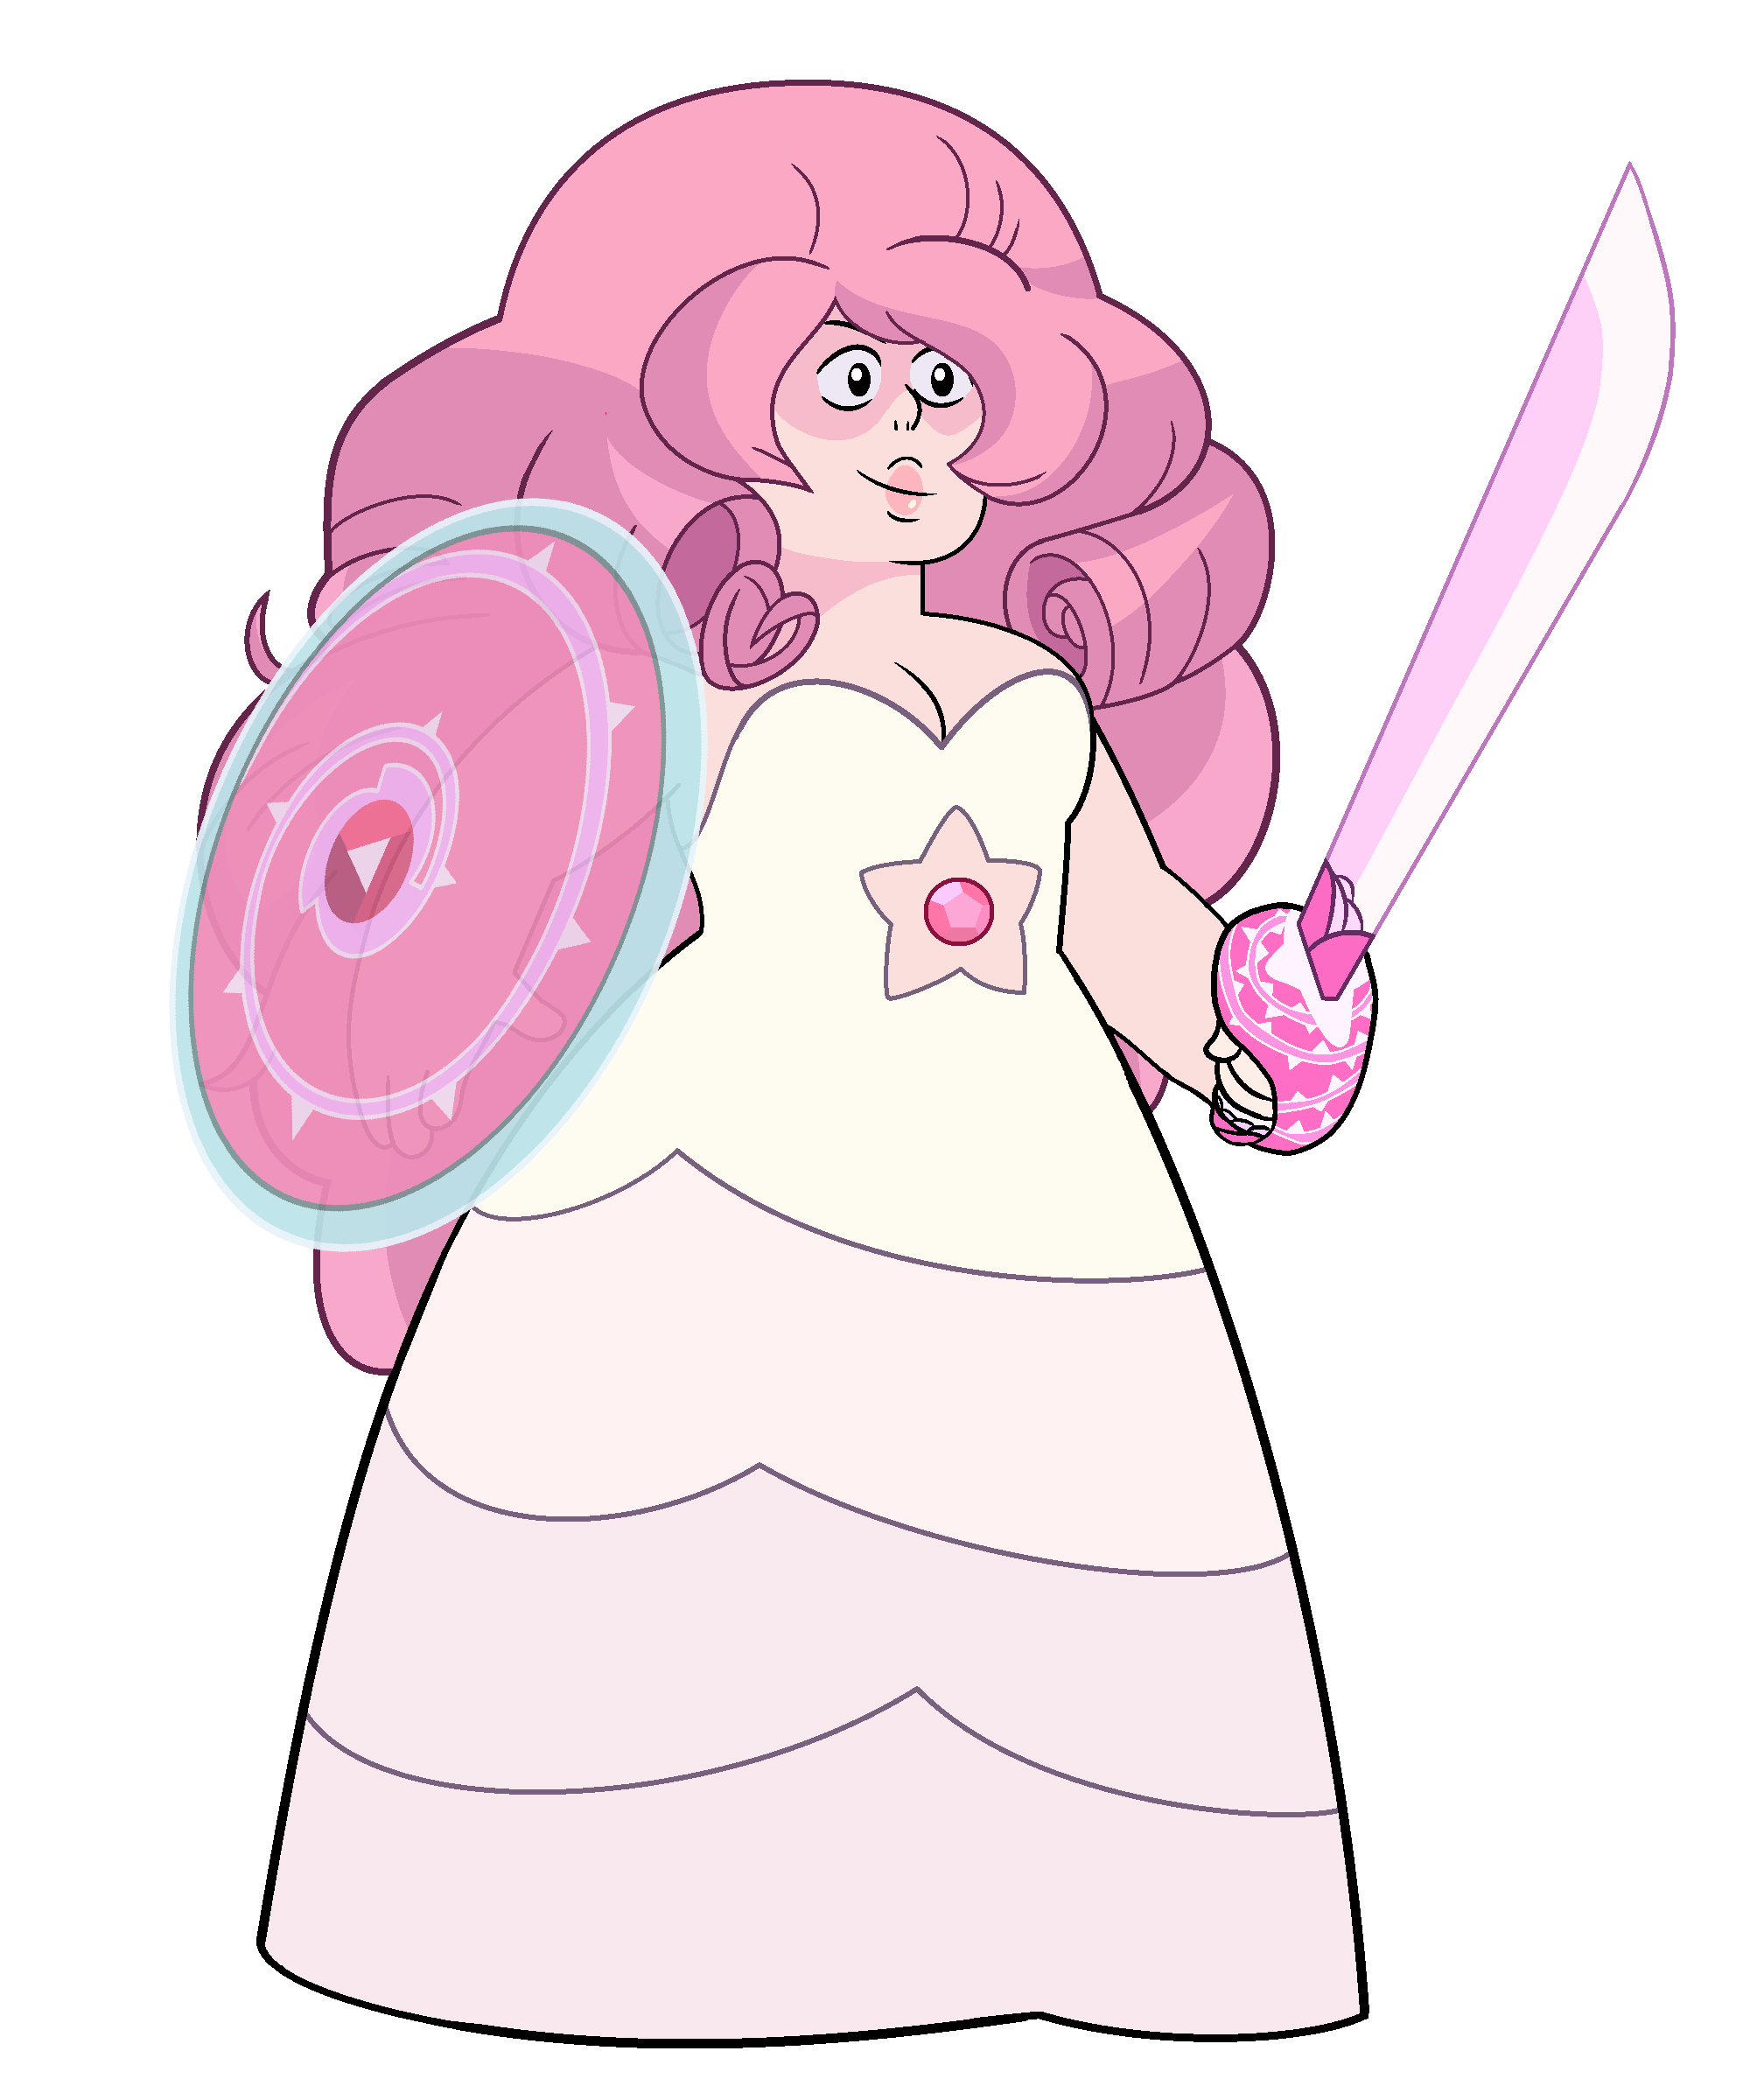 rose quartz steven universe wiki fandom powered by wikia